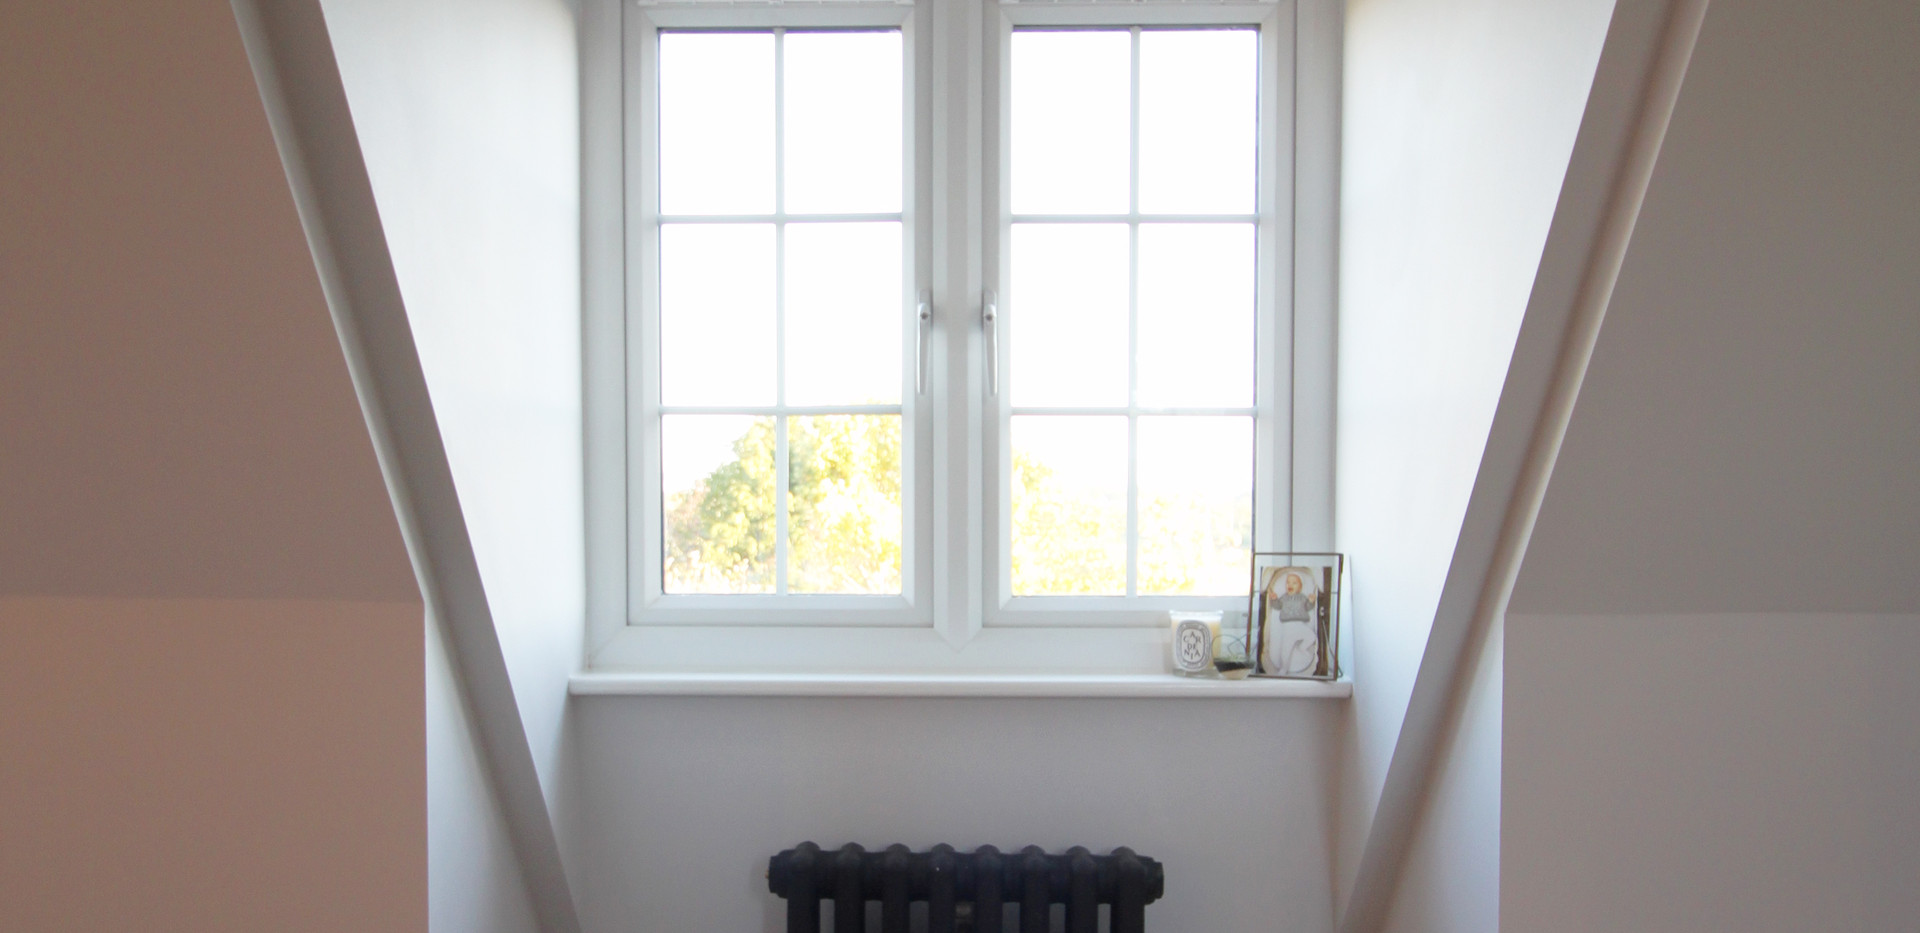 Dormer Window Detail with traditional black radiator